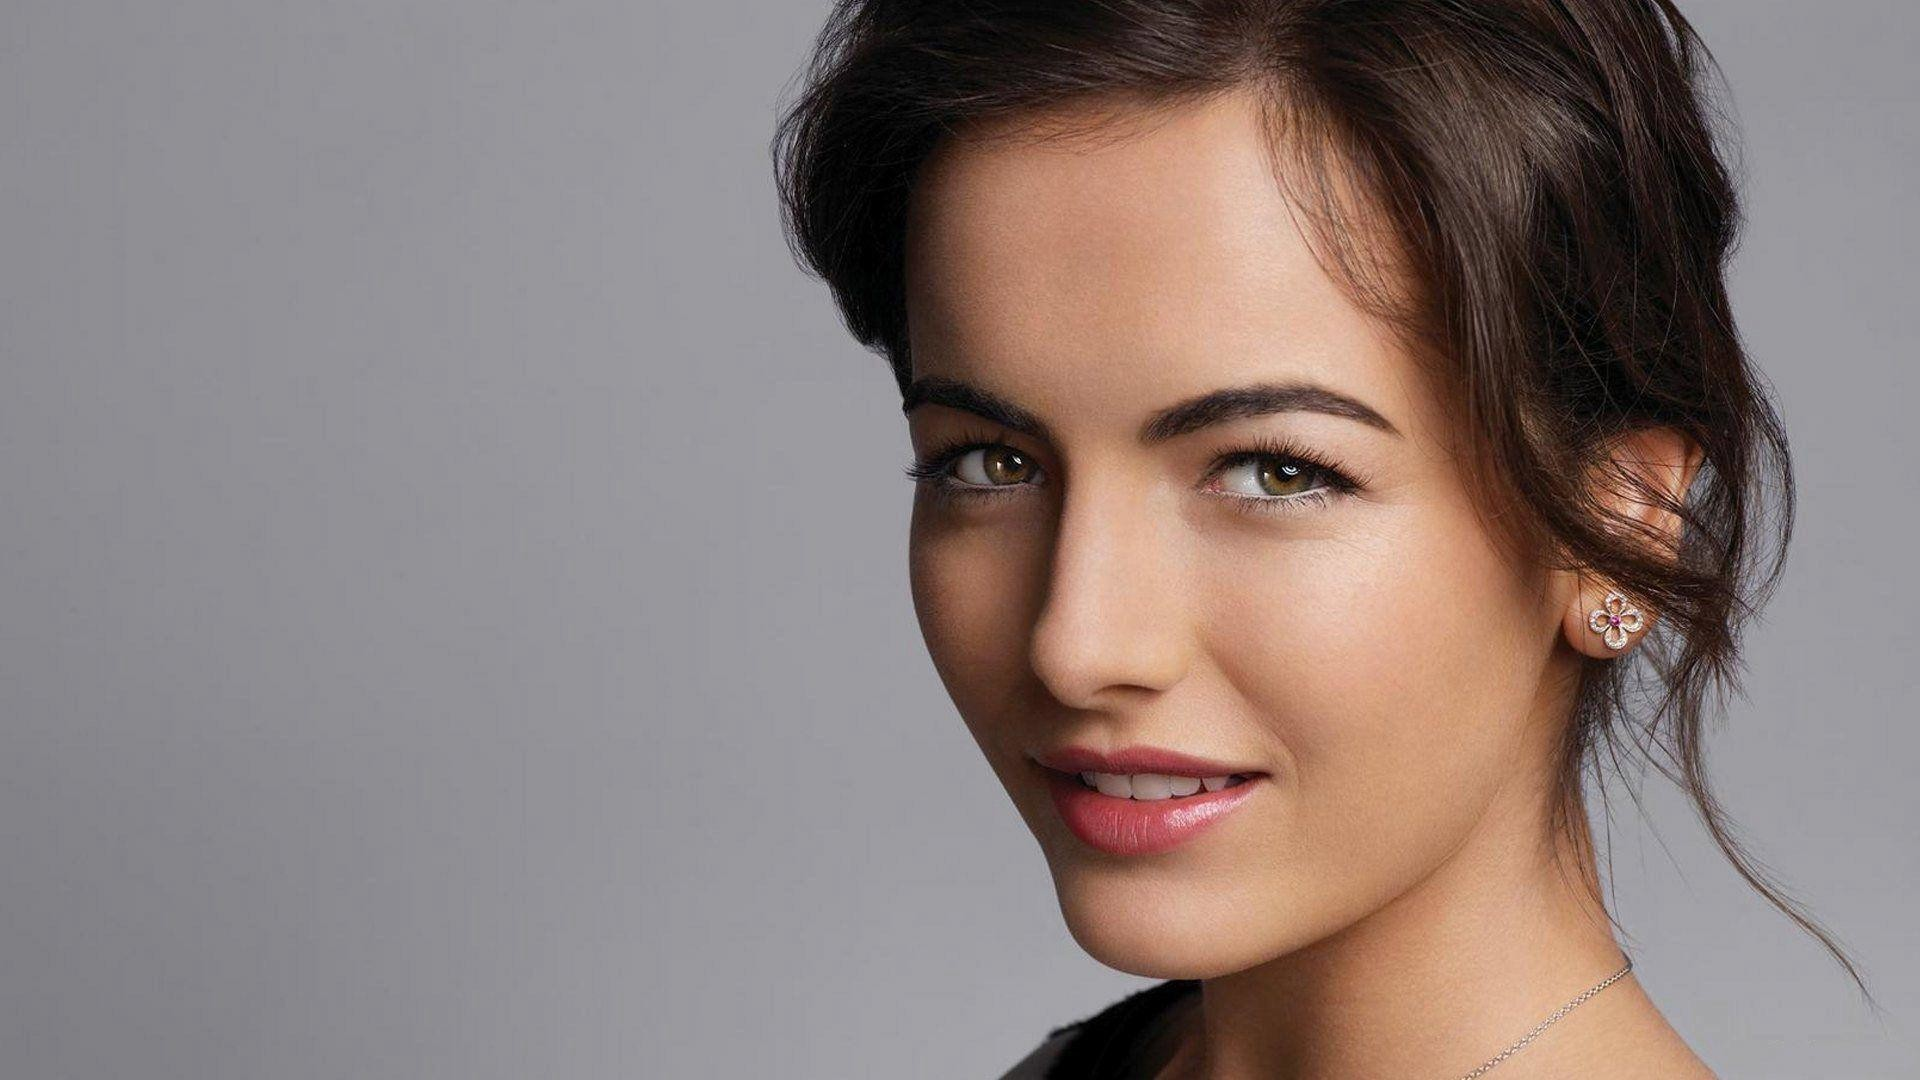 1920x1080 wallpaper: Camilla Belle HD Wallpapers